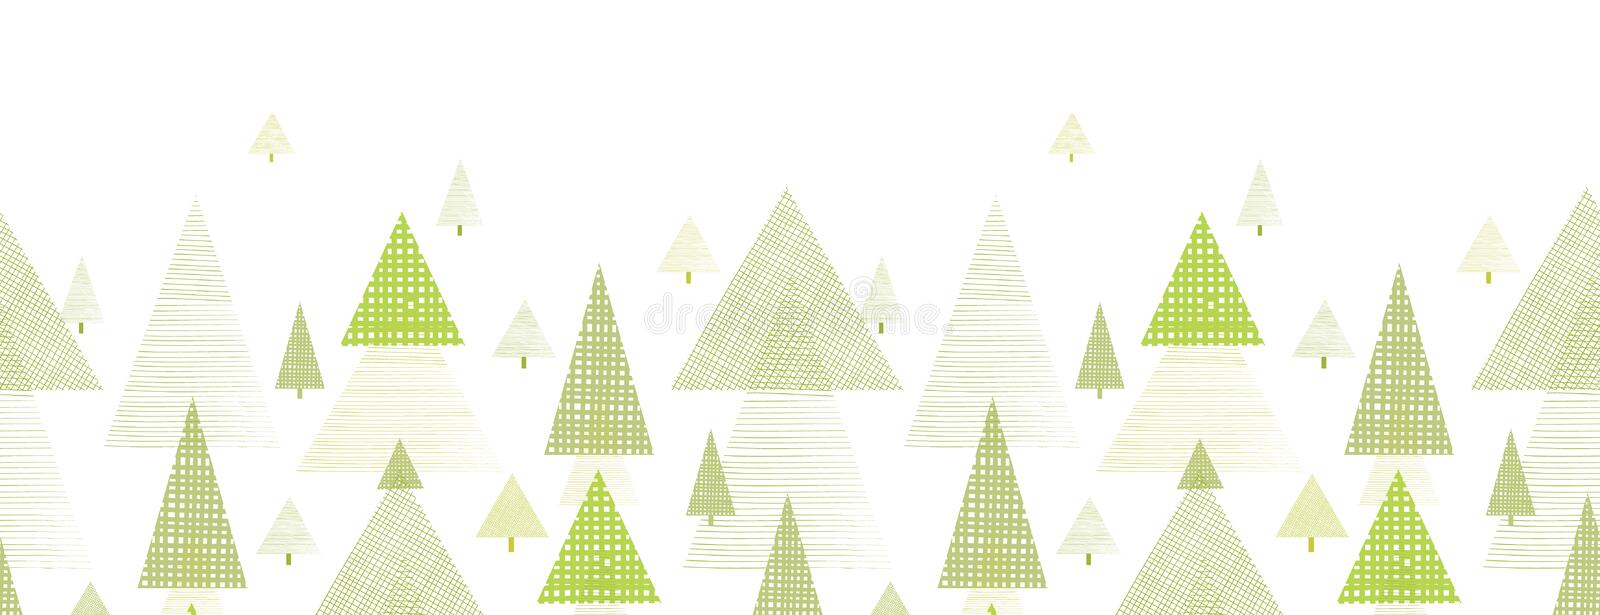 Download Abstract Pine Tree Forest Horizontal Seamless Stock Vector - Image: 32469340